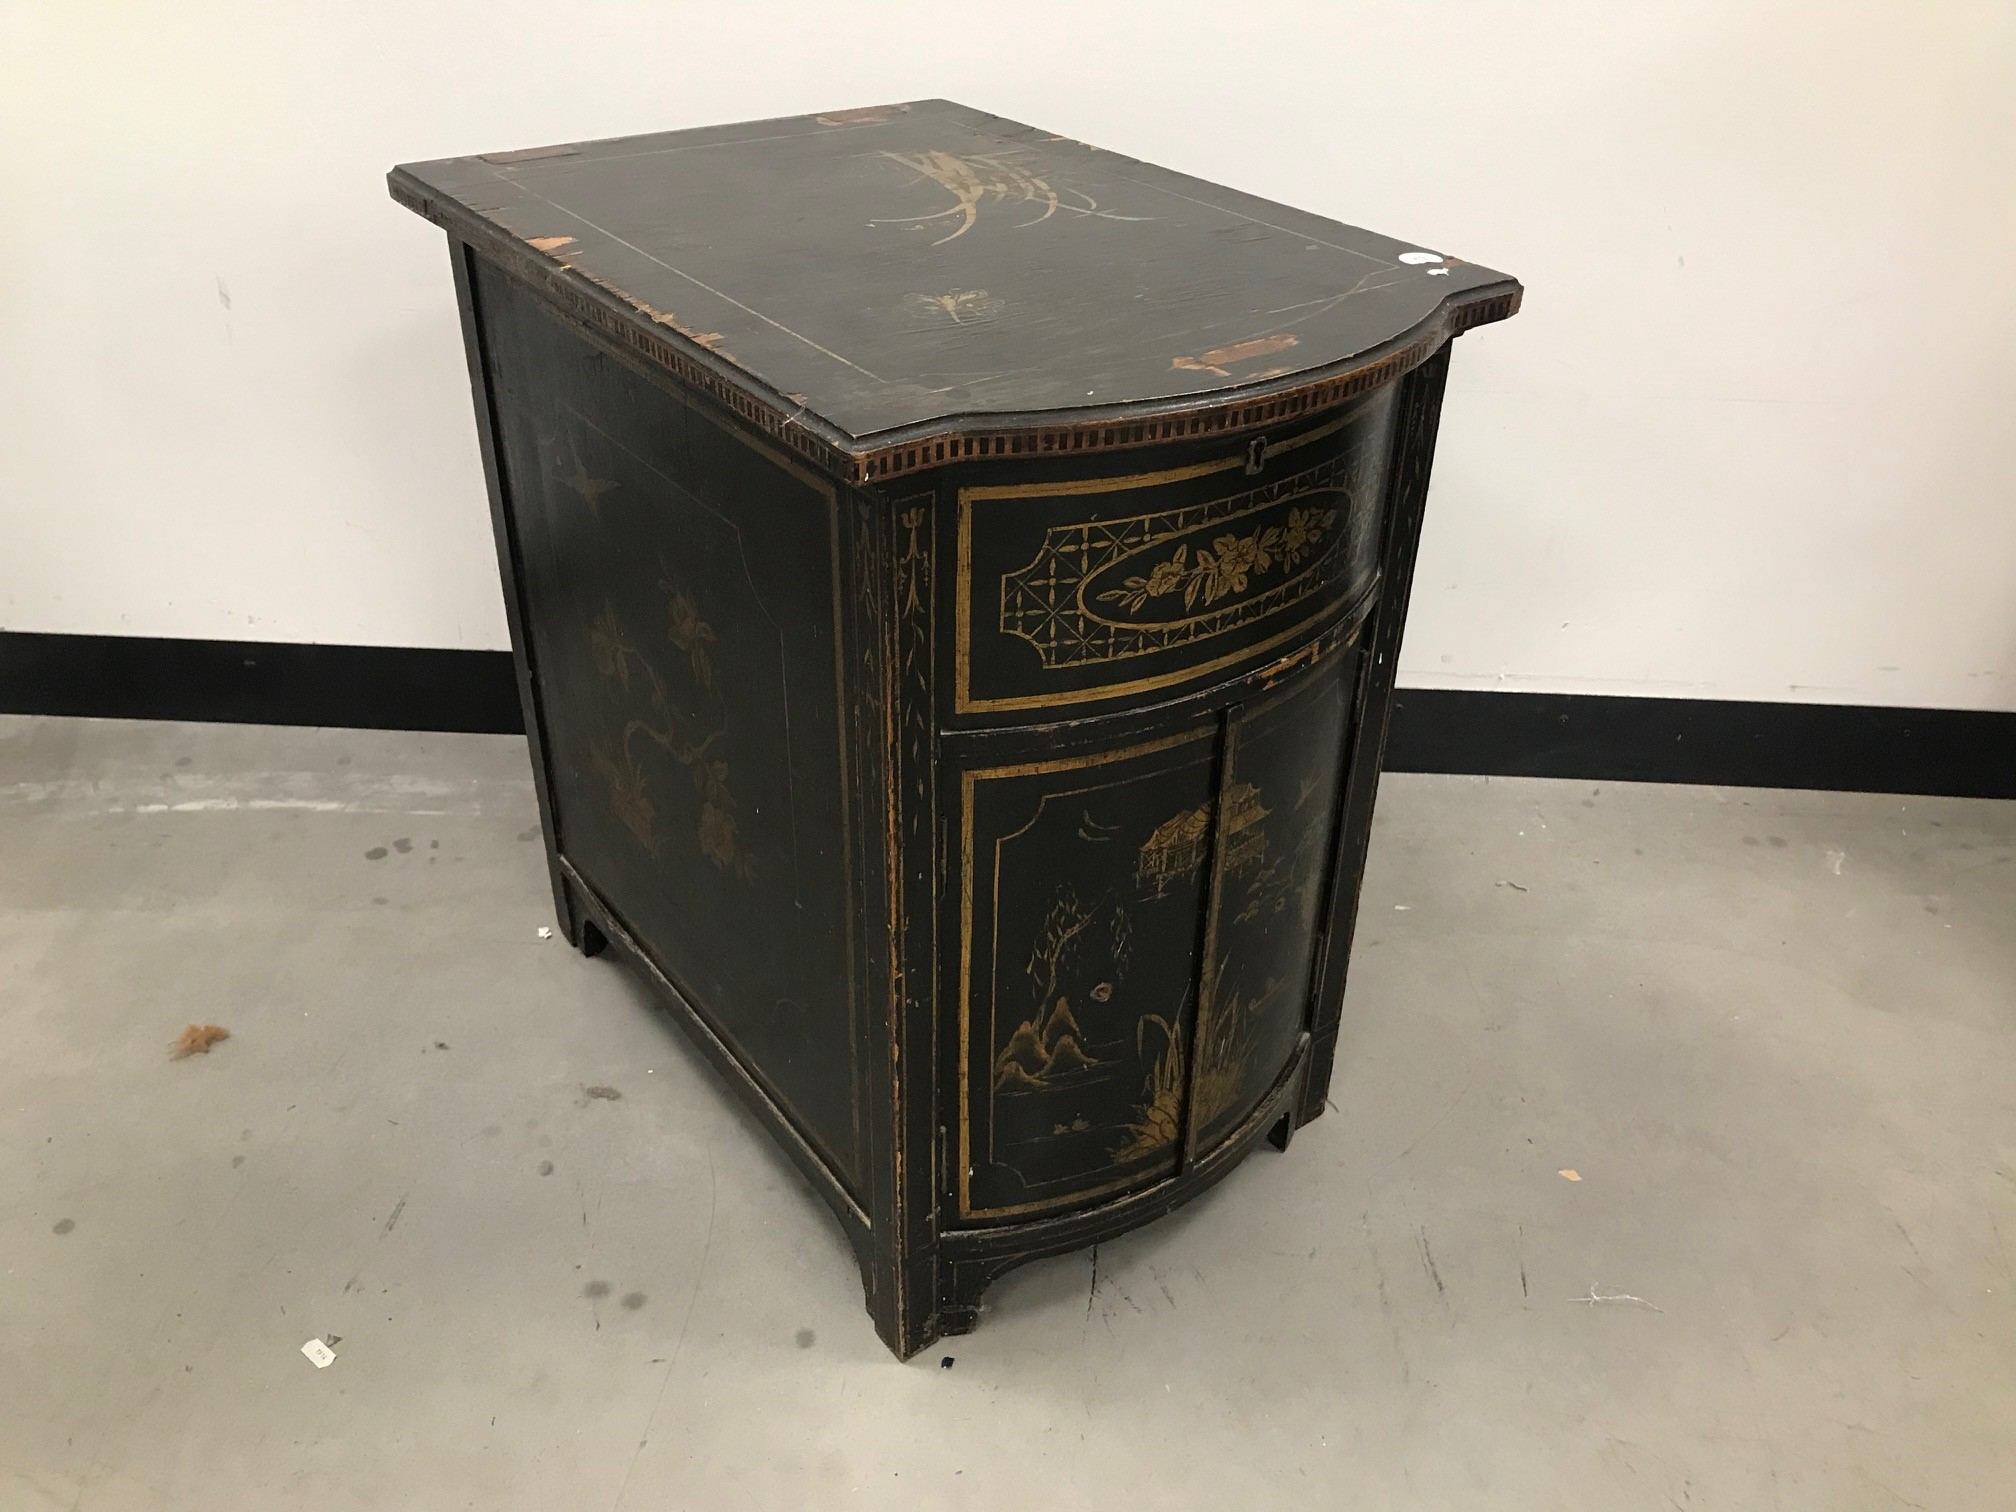 An Art Deco period chinoiserie gramophone cabinet, now converted and doors locked